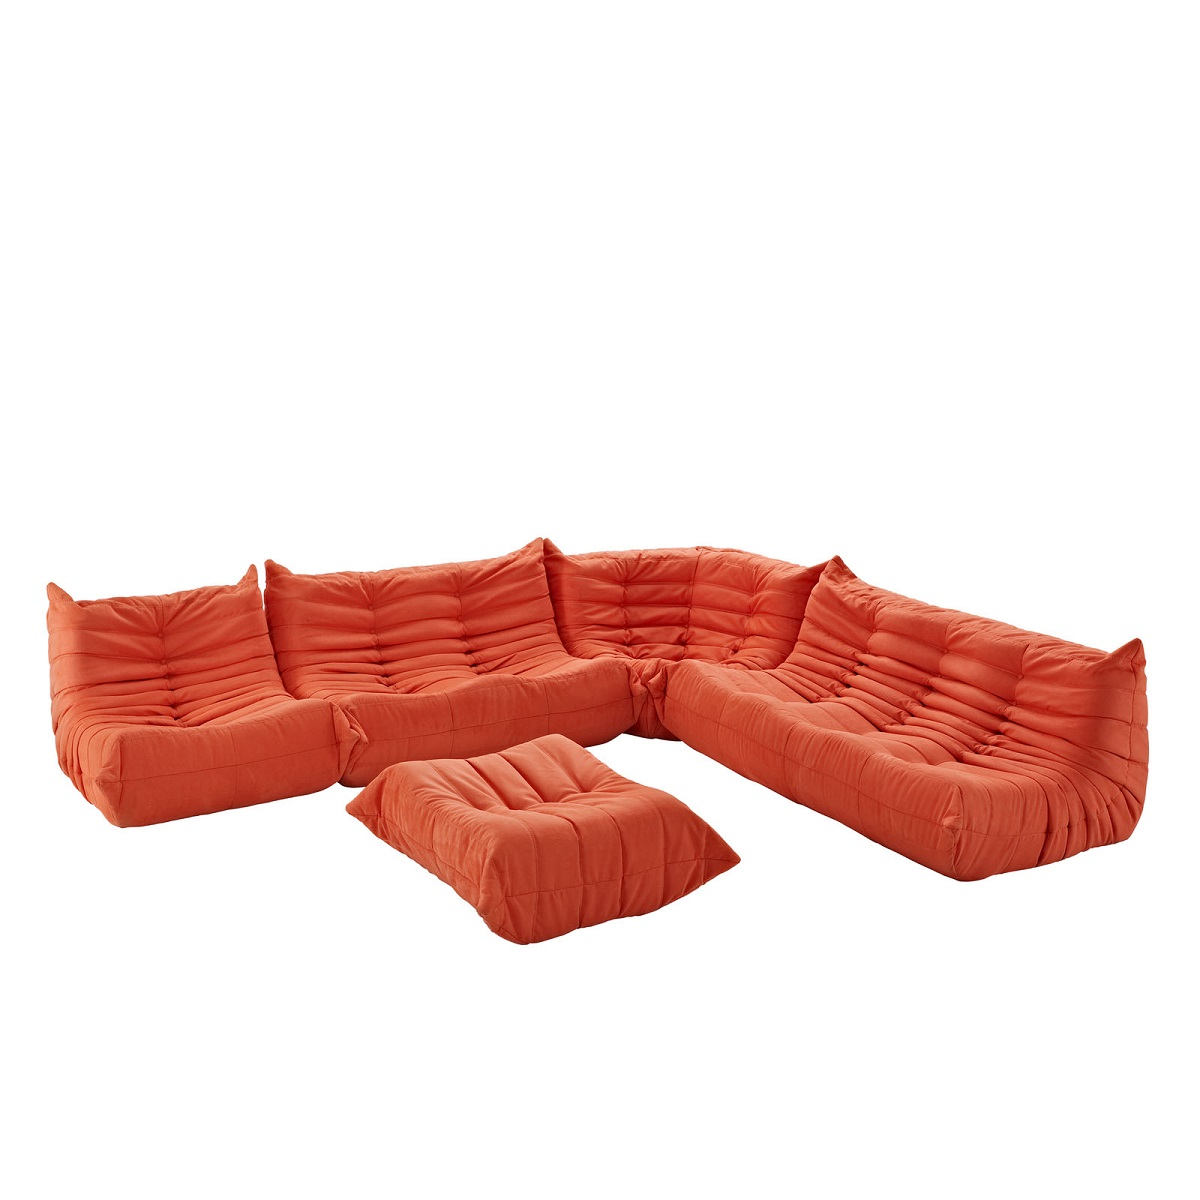 togo sofa replica uk how to clean my leather shop downlow 5 pc set for 3995